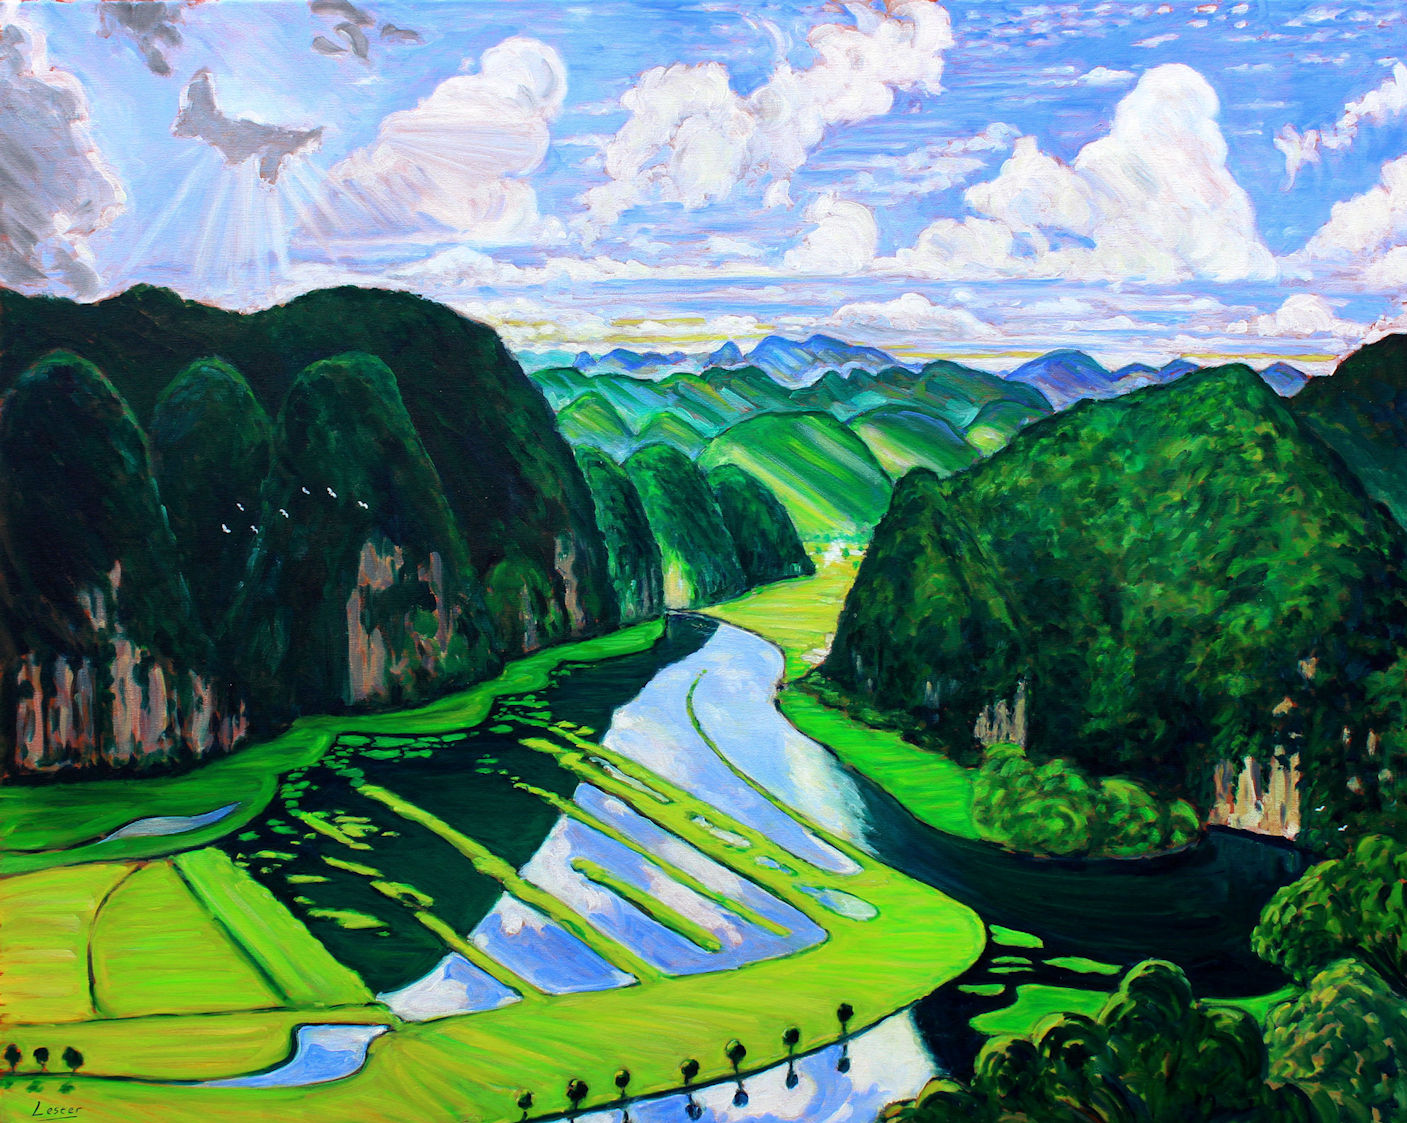 Mountains, Ninh Binh. After the Rain. Oil on canvas, 100 x 80cm. Sold